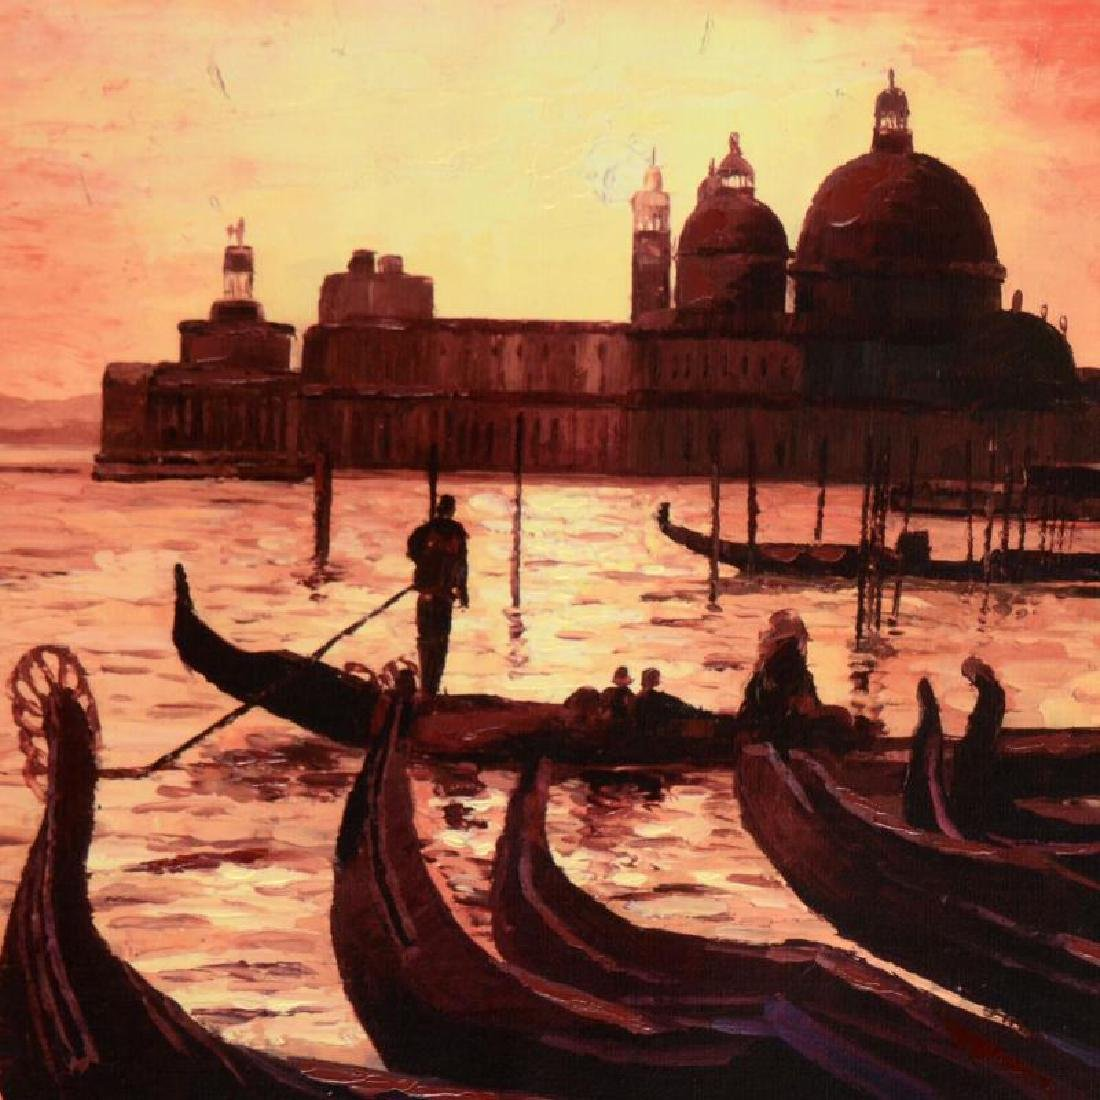 Sunset on the Grand Canal 3 by Behrens (1933-2014) - 2